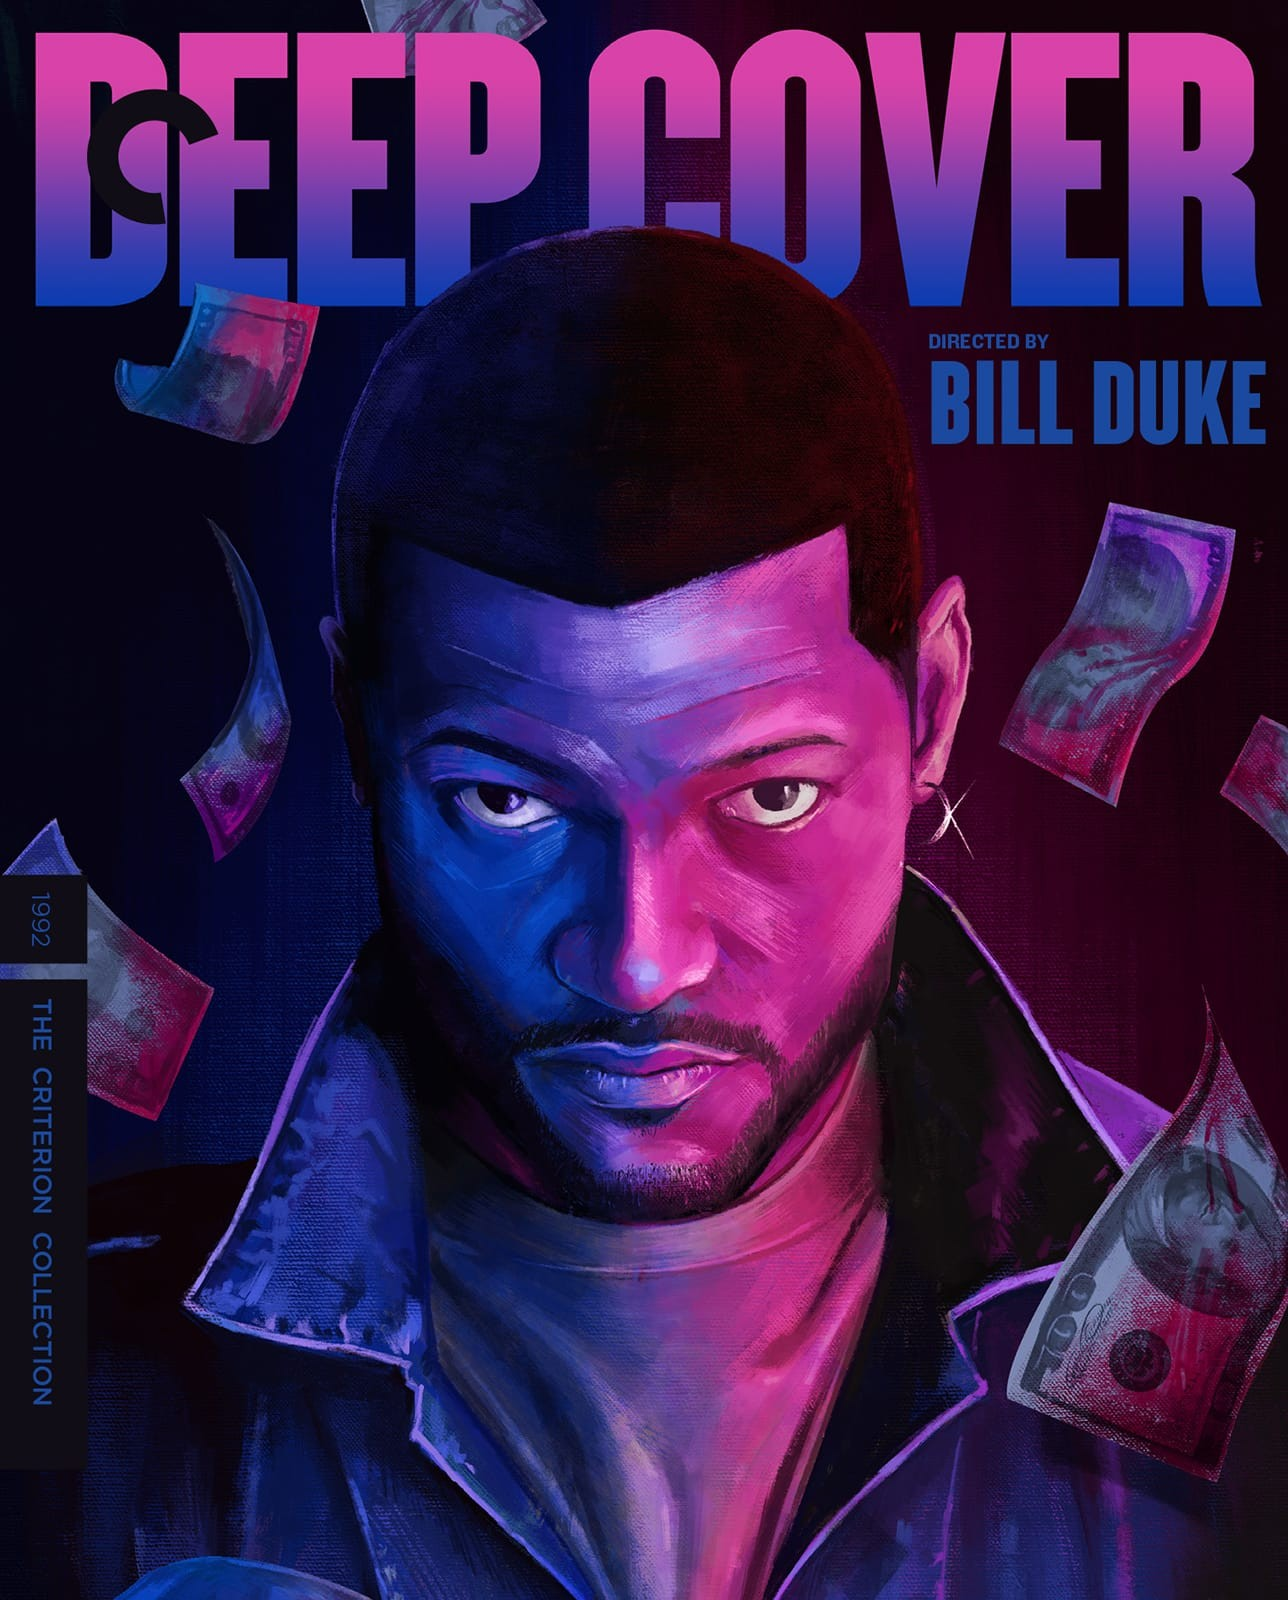 Deep Cover (1992) | The Criterion Collection